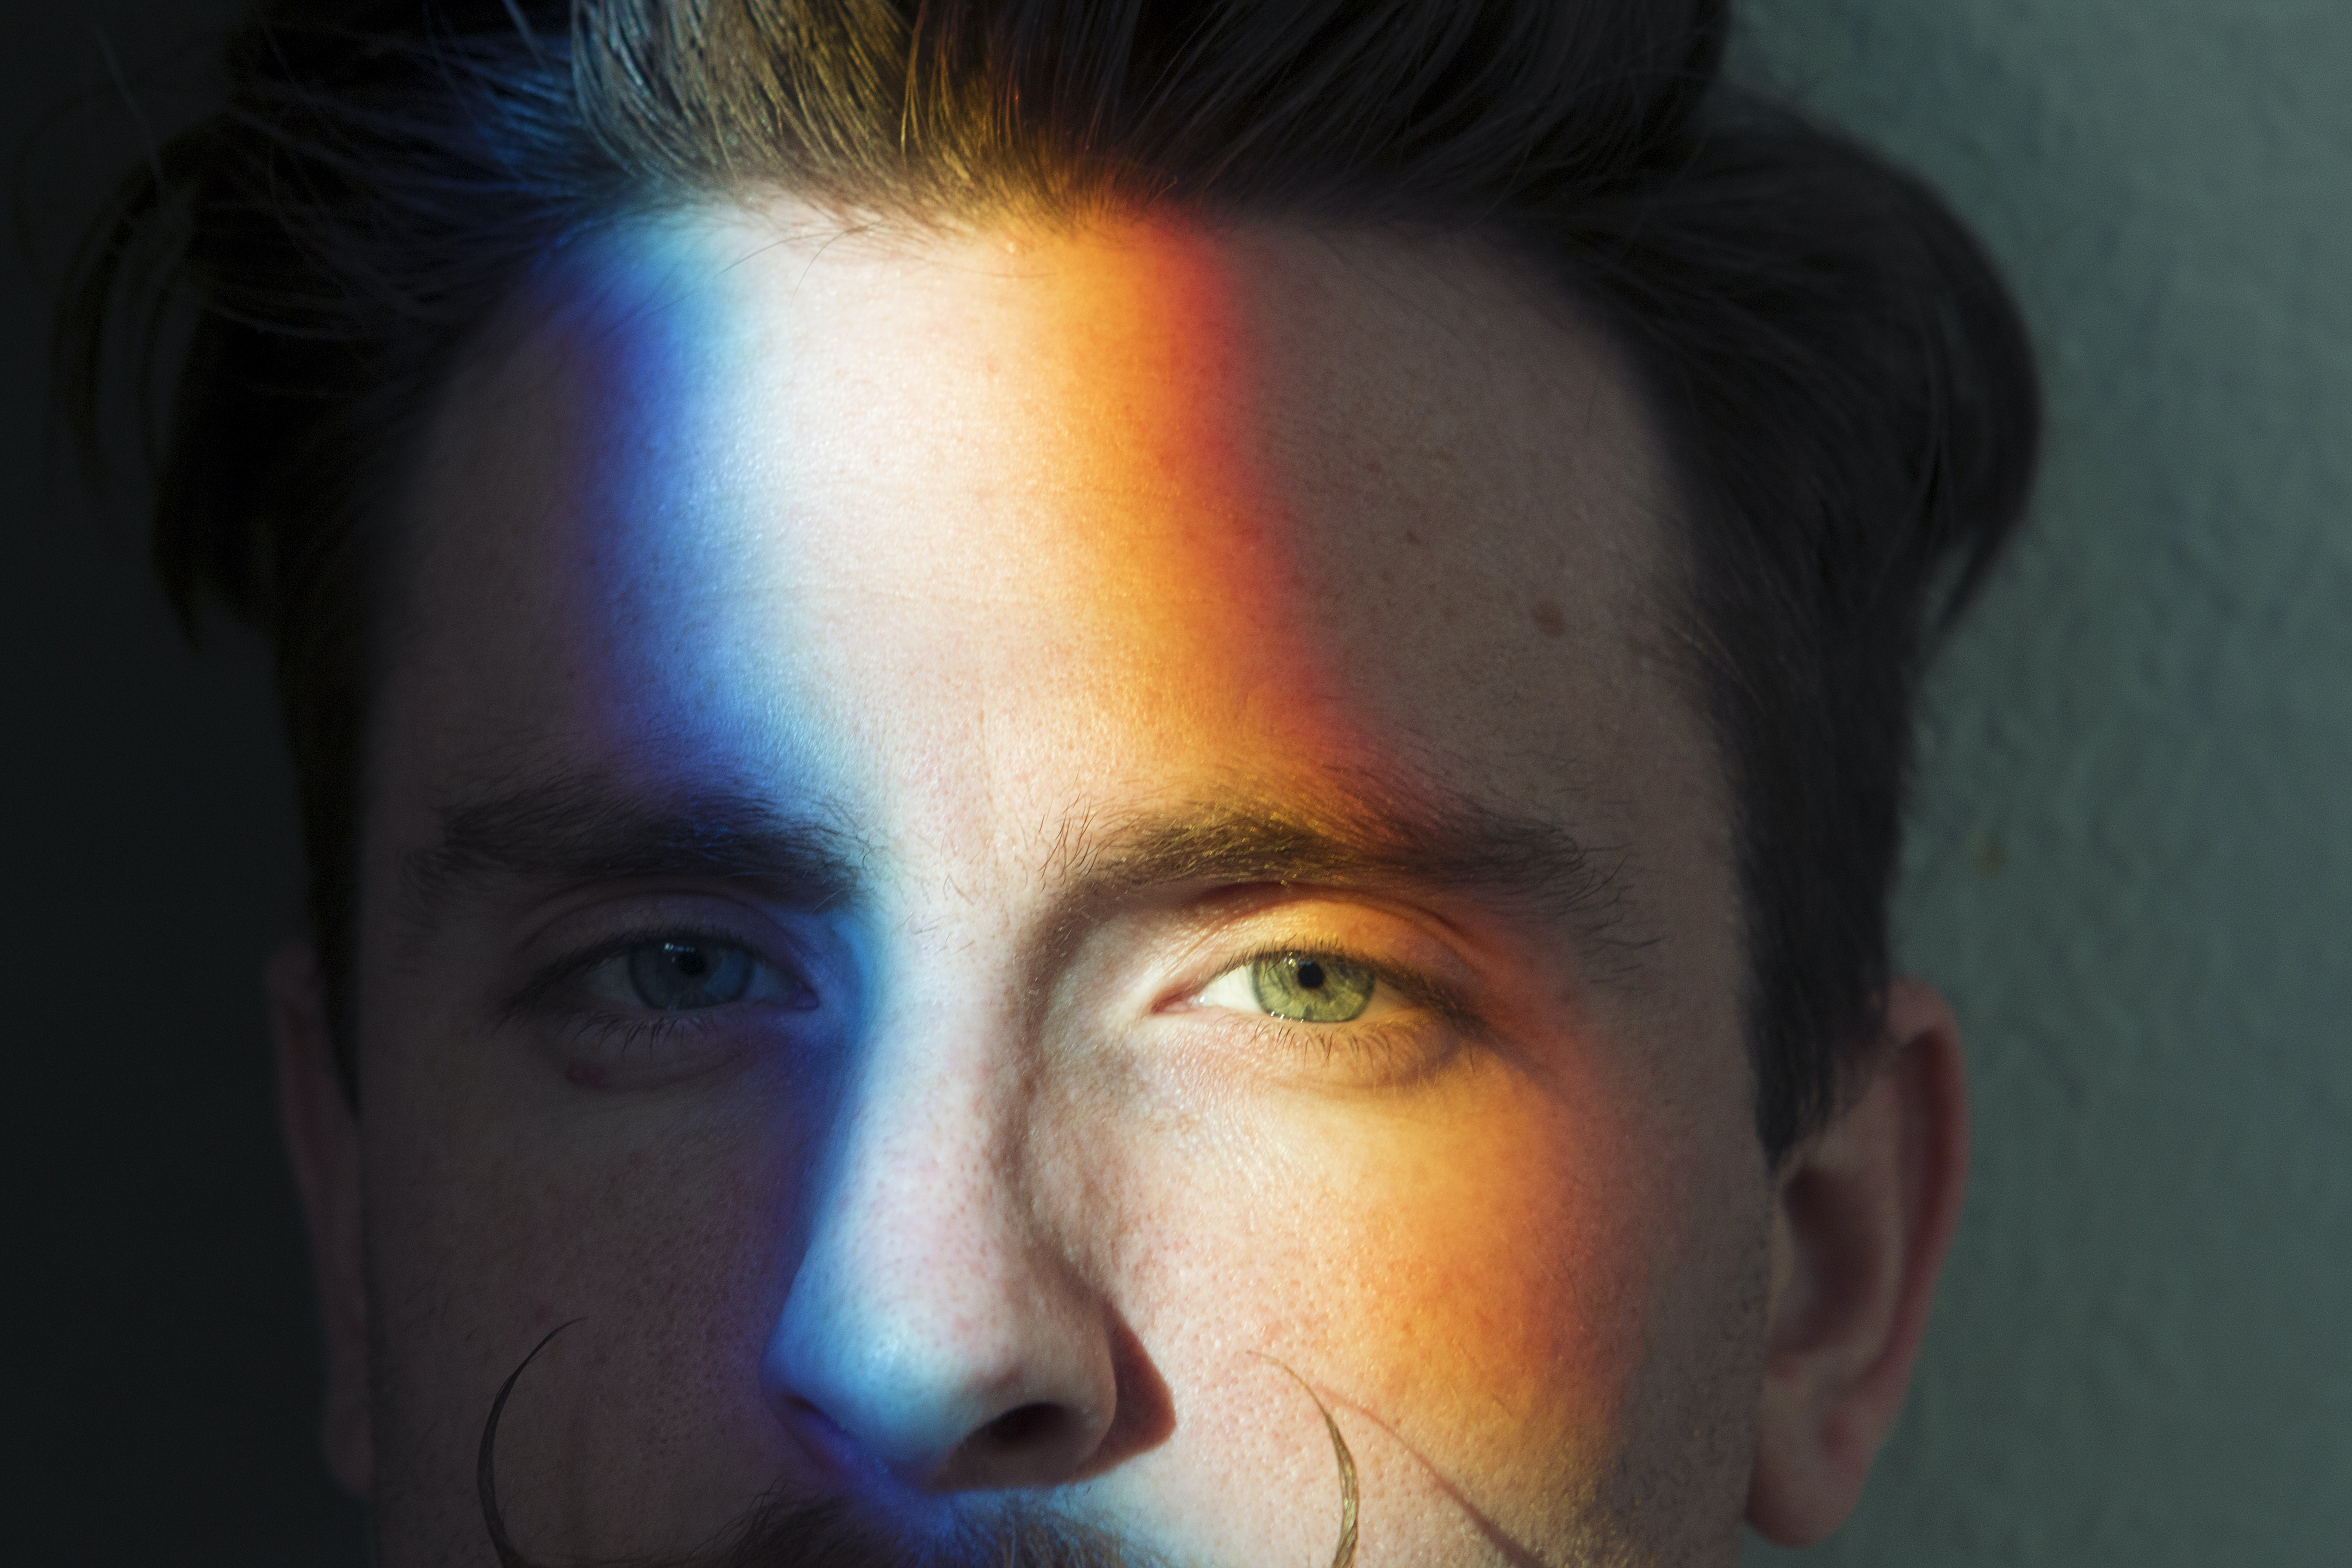 closeup photo of man's face with light reflections